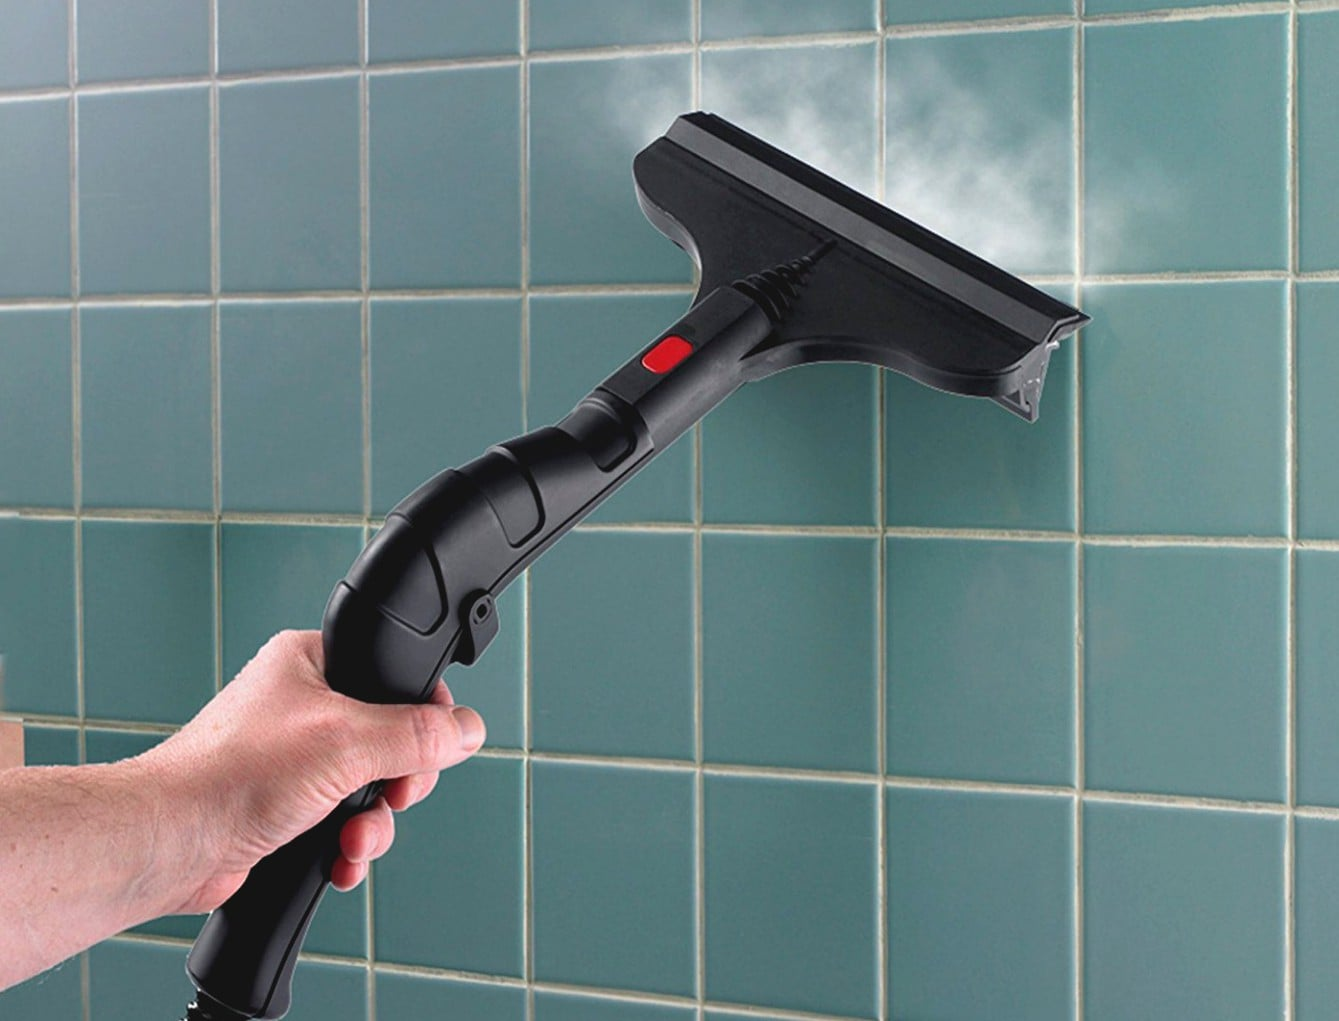 5 Best Steam Cleaner For Tile Floors And Grout 2019 - Top Rated Mop Reviews